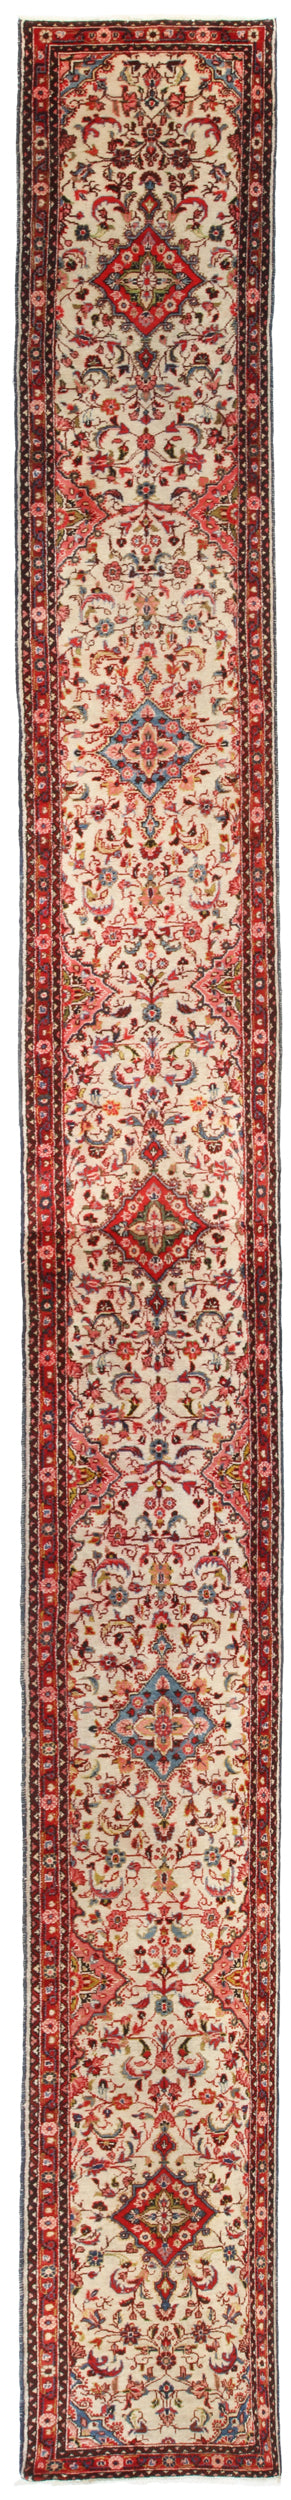 Hamadan Runner Super Long-Turco Persian Rug Company Inc.